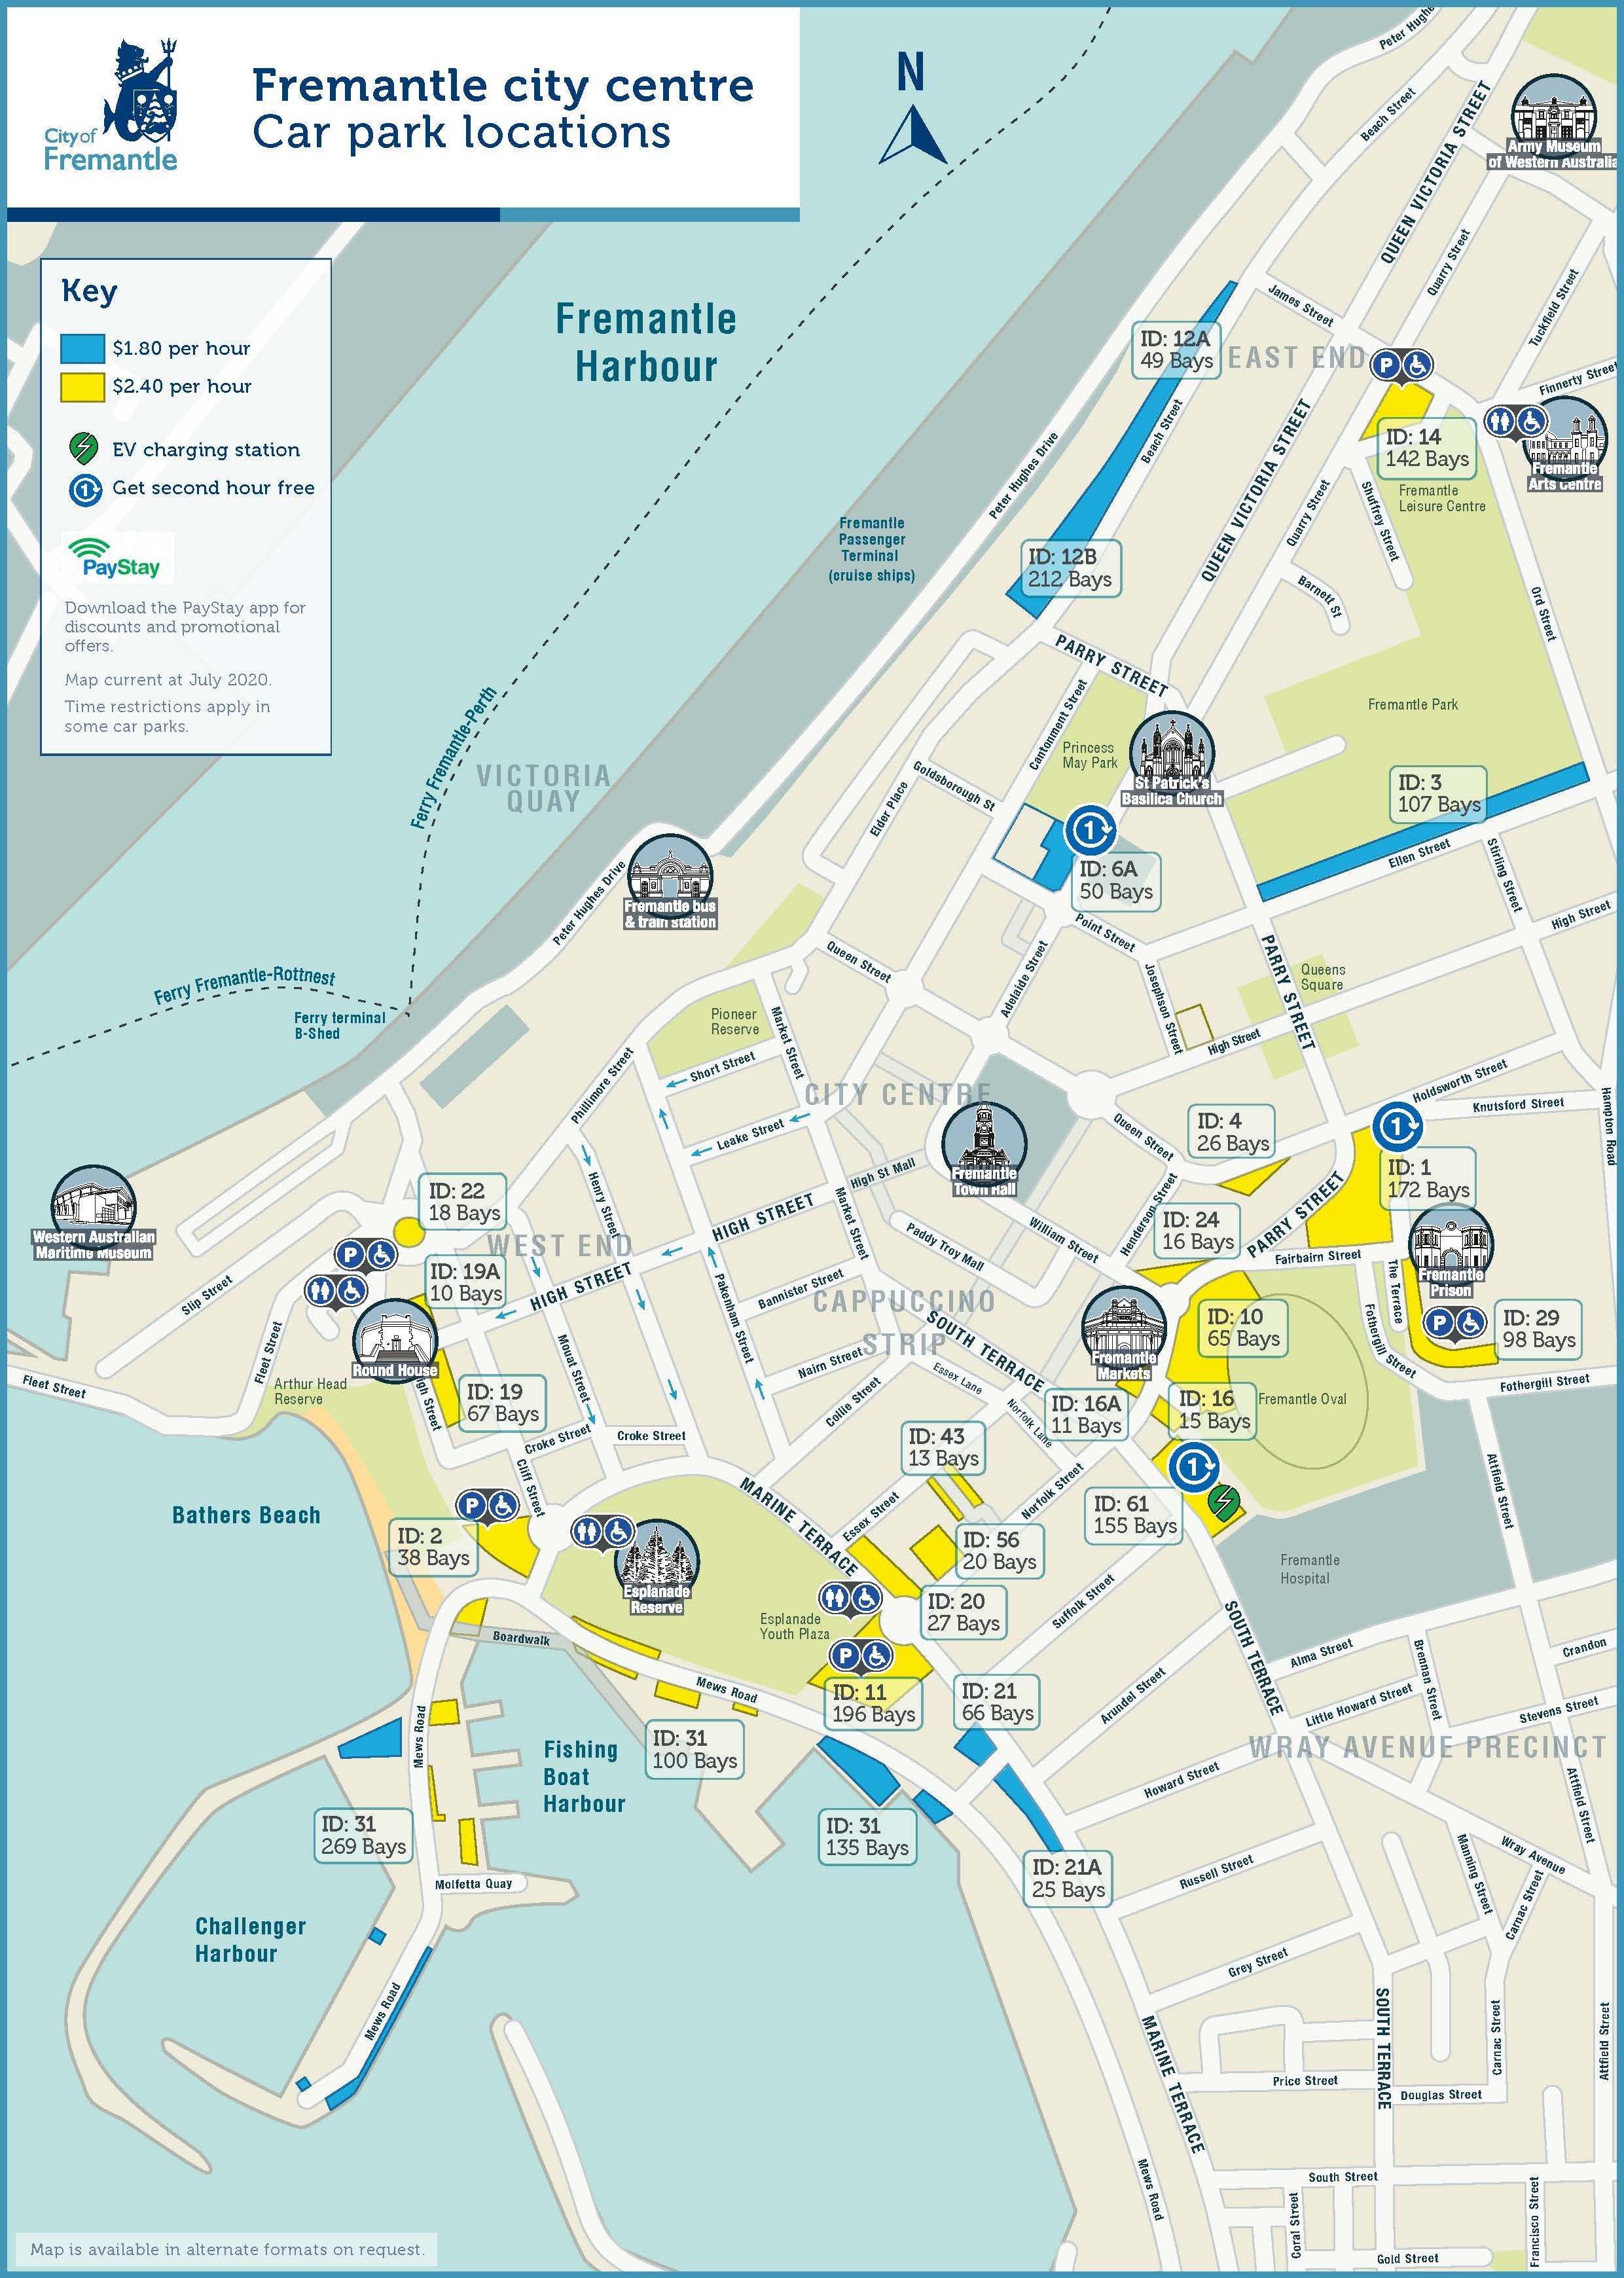 City of Fremantle parking locations map